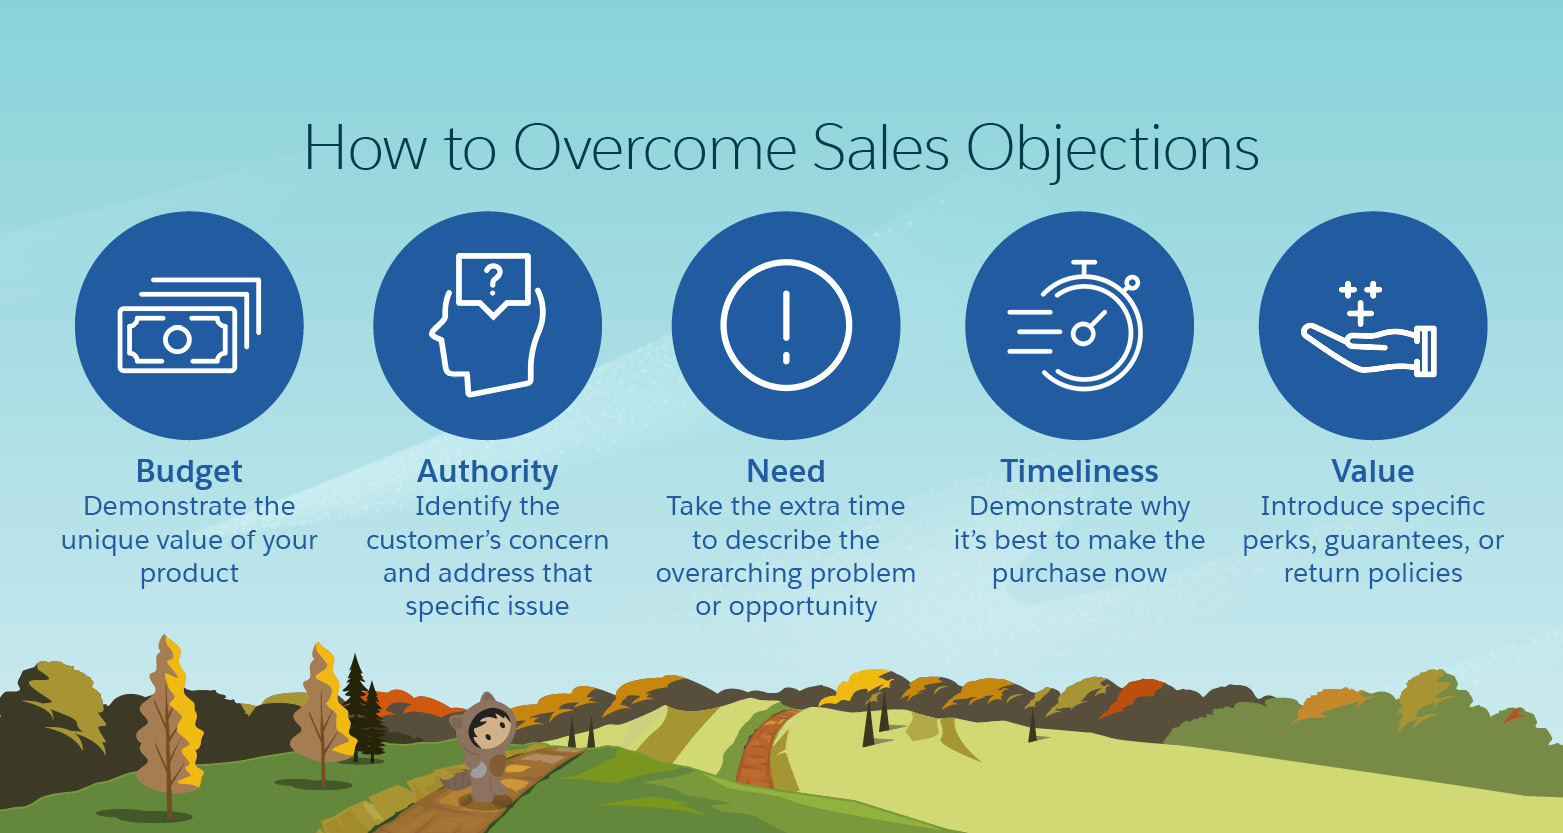 Tactics for Overcoming Sales Objections - Salesforce Blog